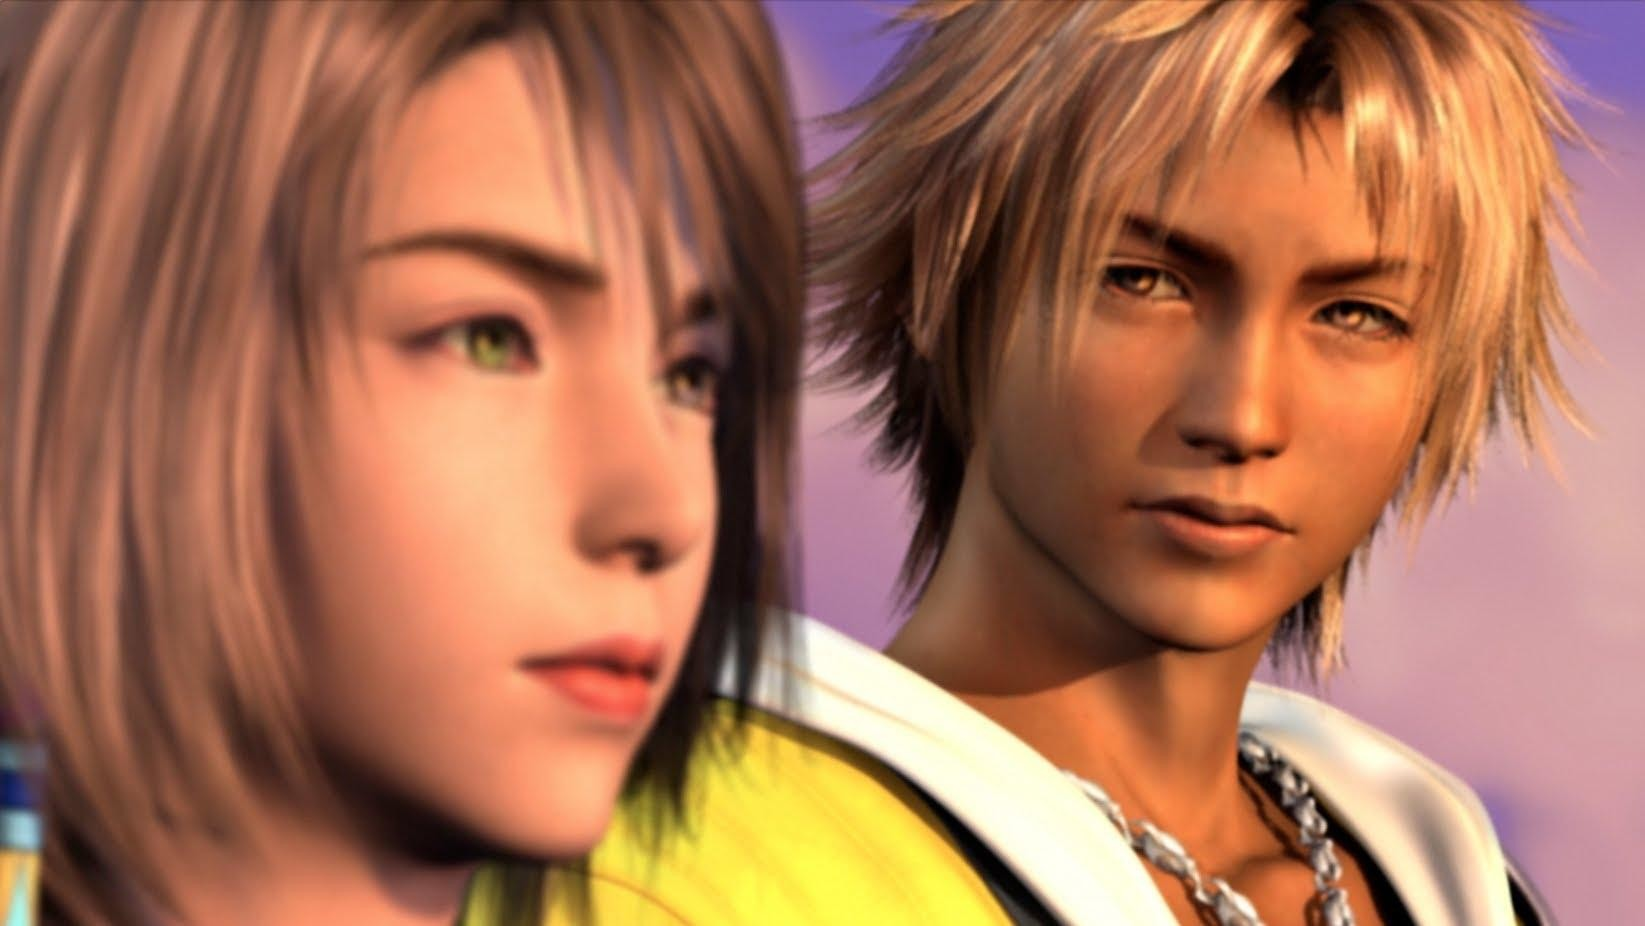 Here are the Final Fantasy games, ranked from best to worst